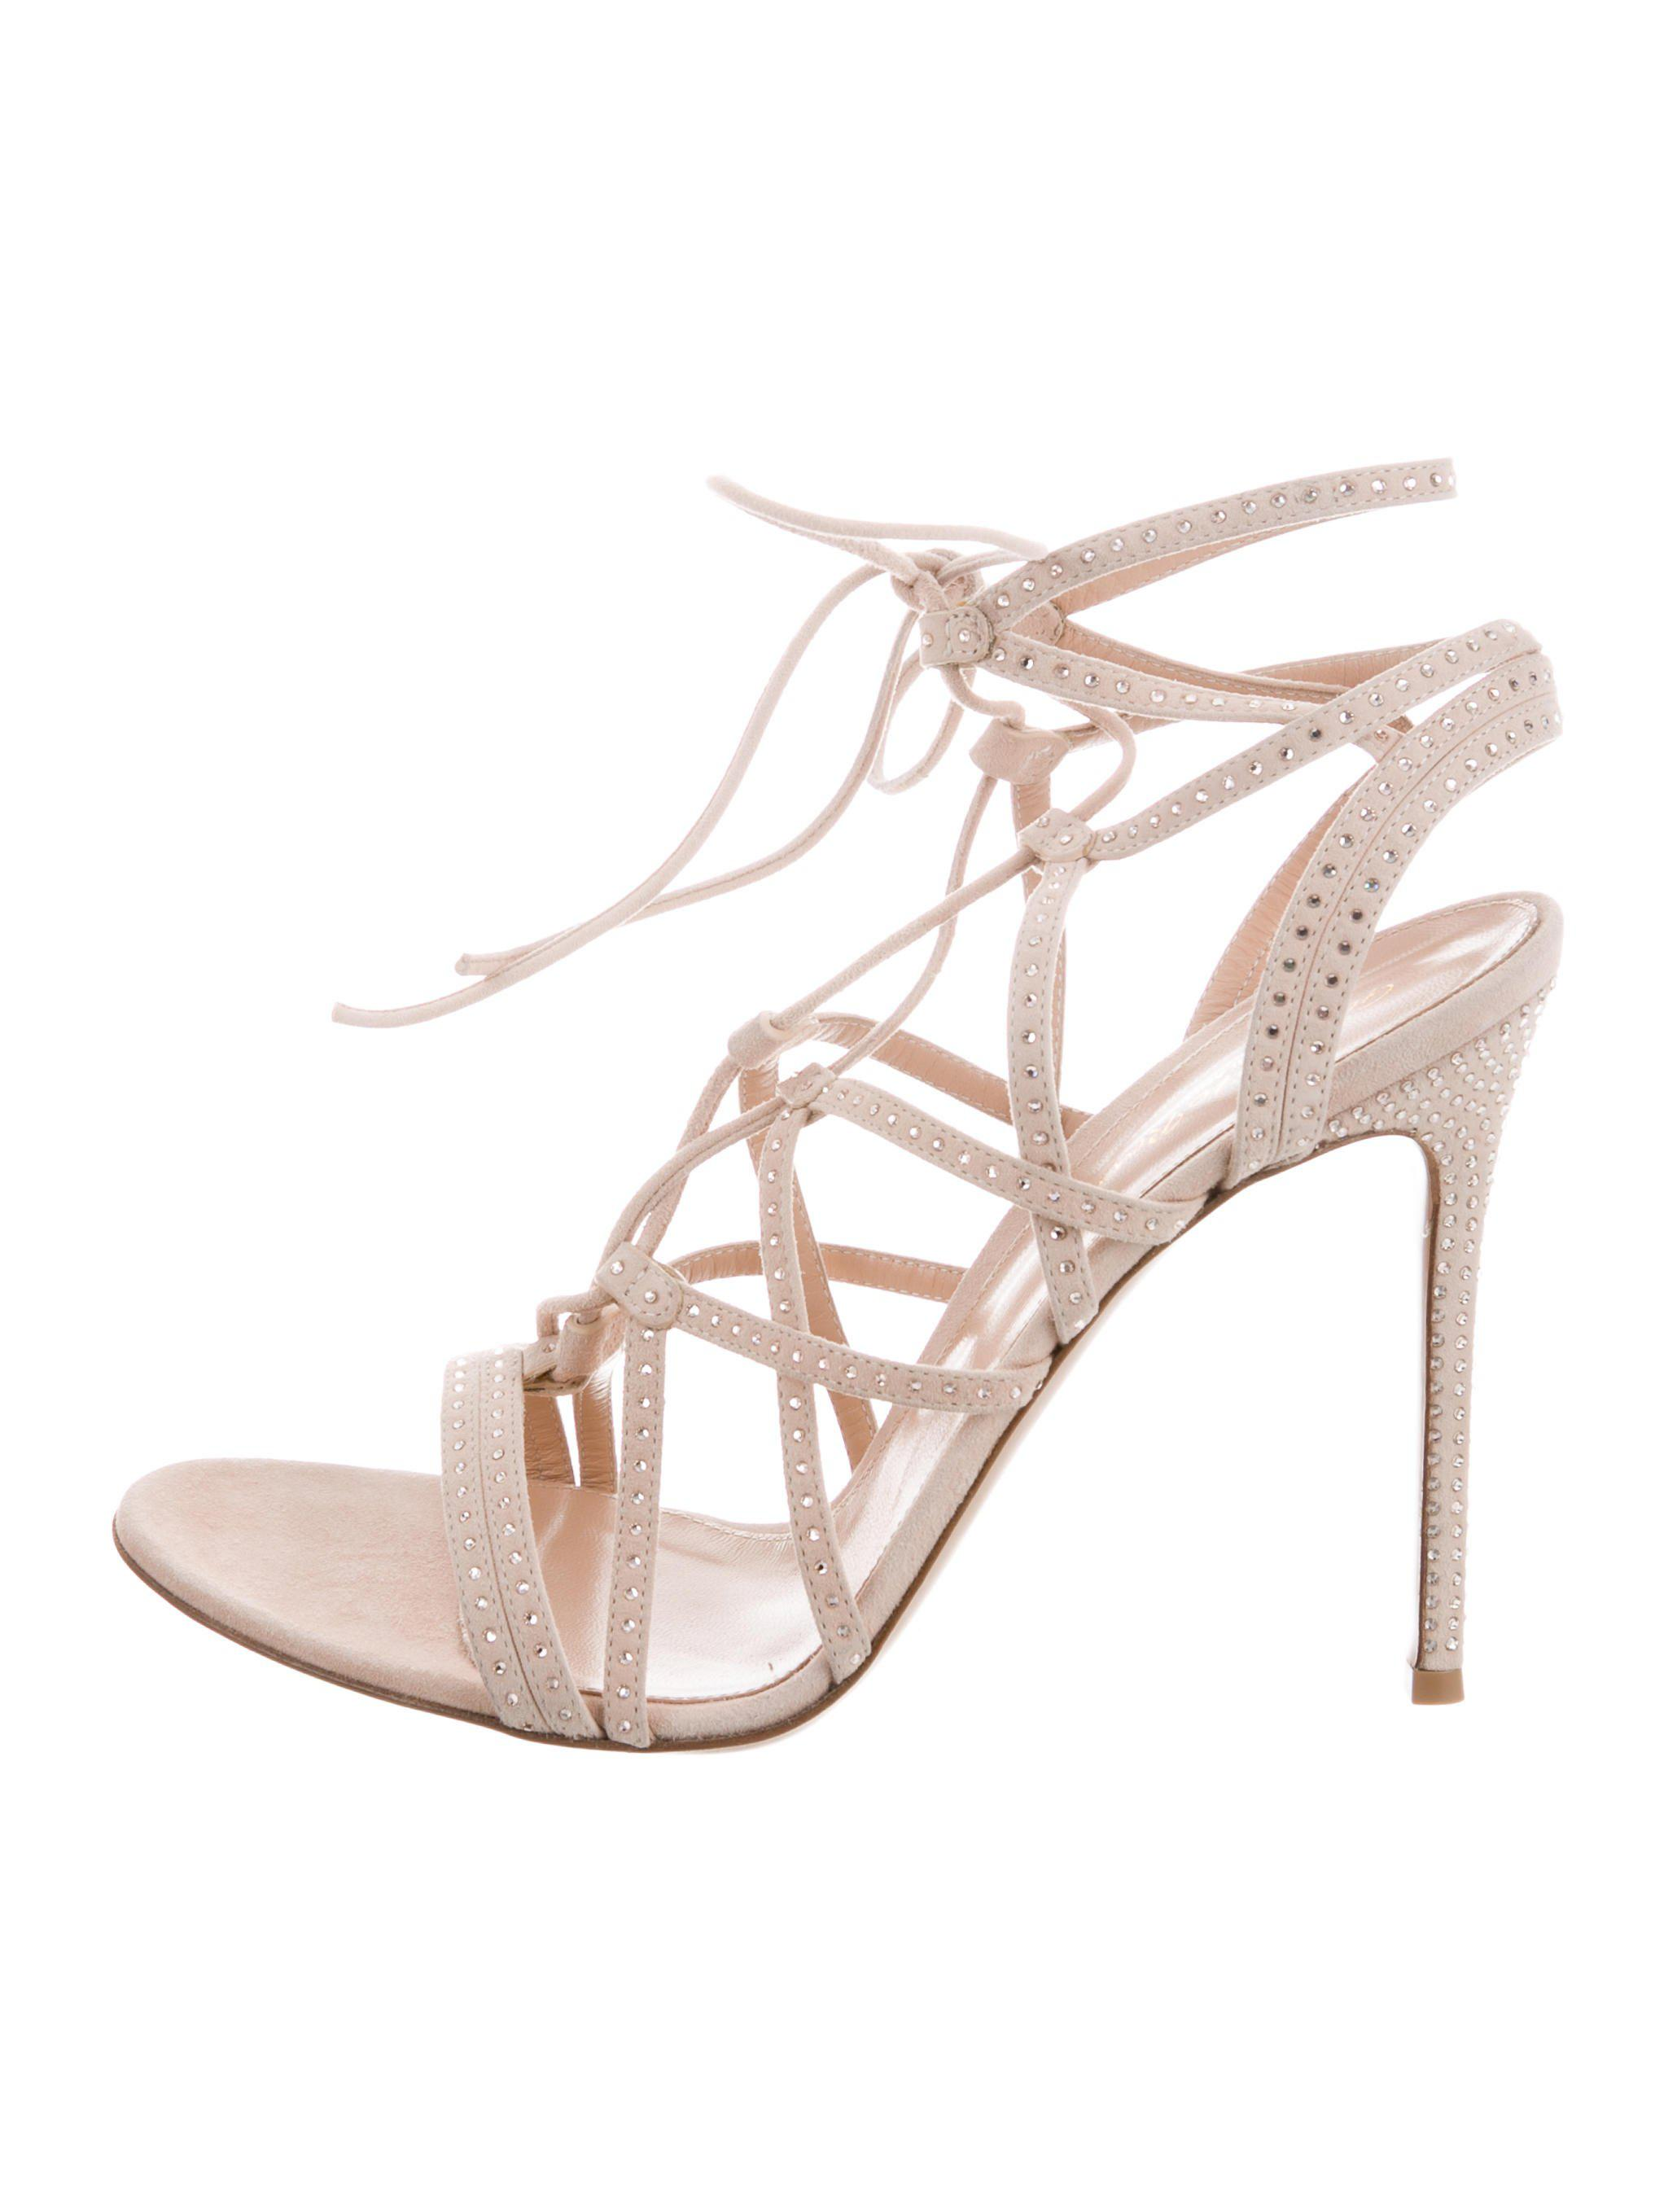 Gianvito Rossi Suede Lace-Up Sandals w/ Tags low shipping fee cheap online cheap wholesale cheap price factory outlet RDLfIiUiG